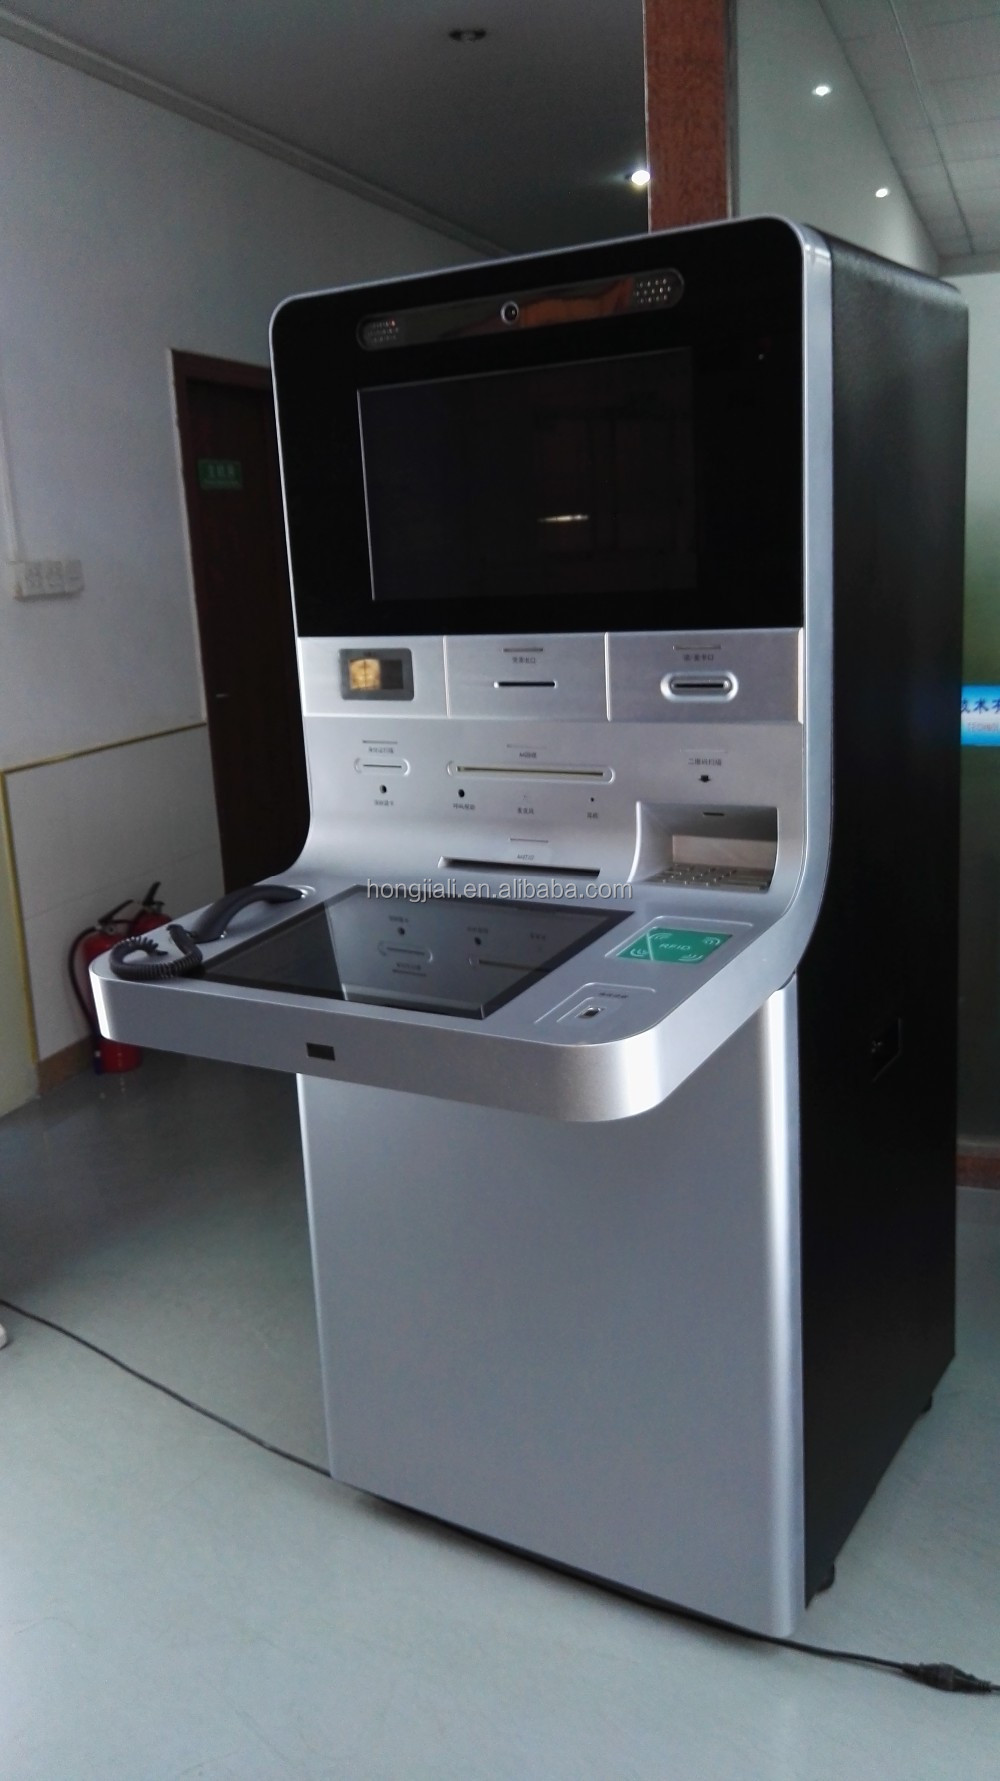 VTM & ATM machine payment touch screen kiosk